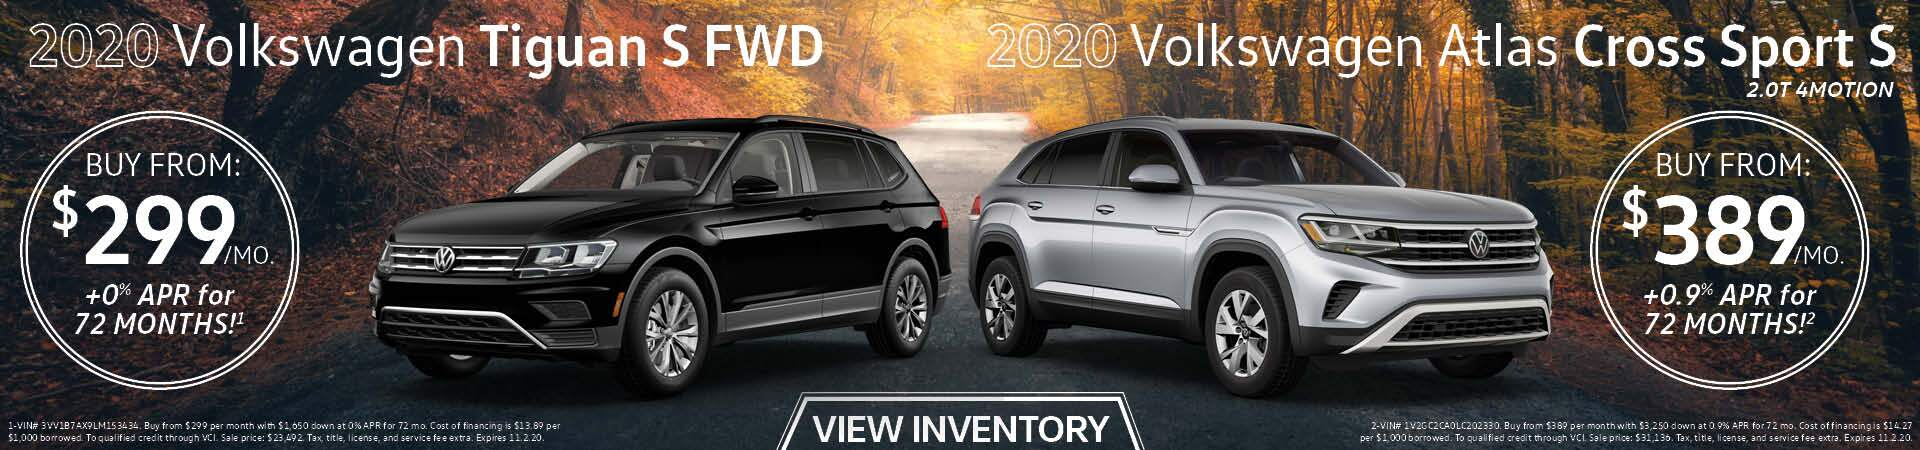 2020 VW Tiguan, 2020 VW Atlas Cross Sport